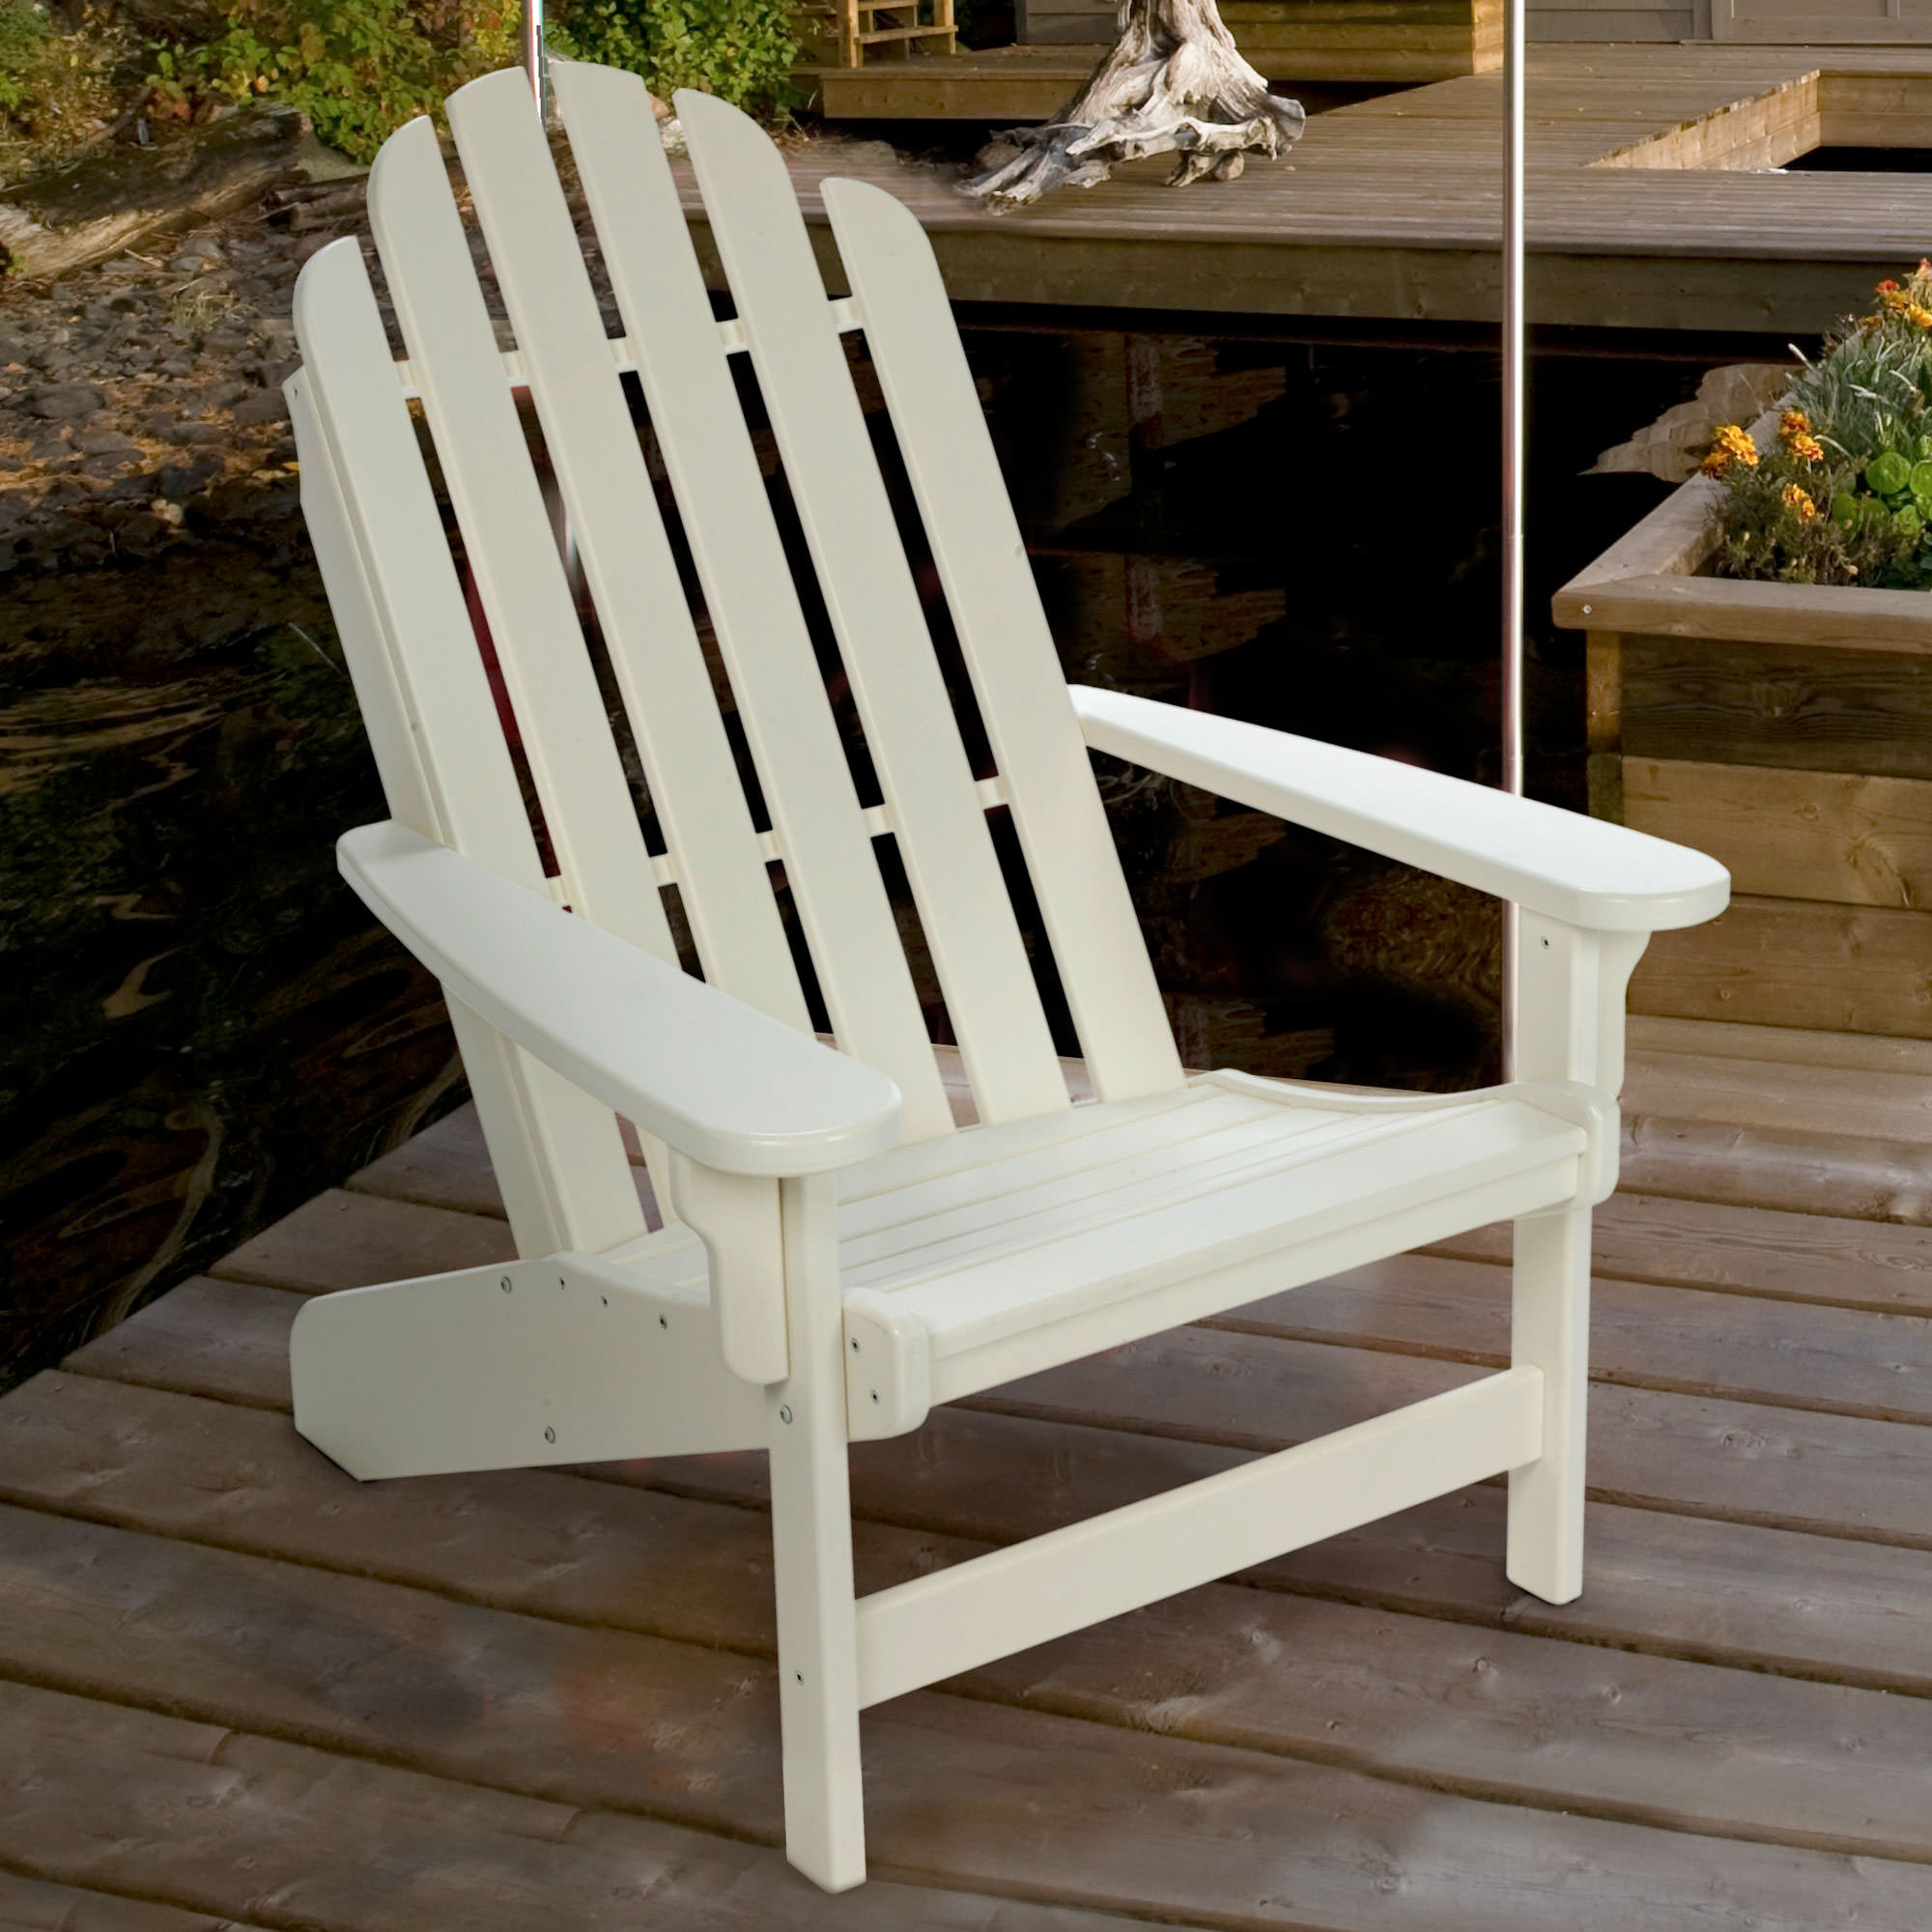 adirondack for cheap patio your decoration lifetime garden chairs wood choice outdoor ideas right chair lowes and depot is home the